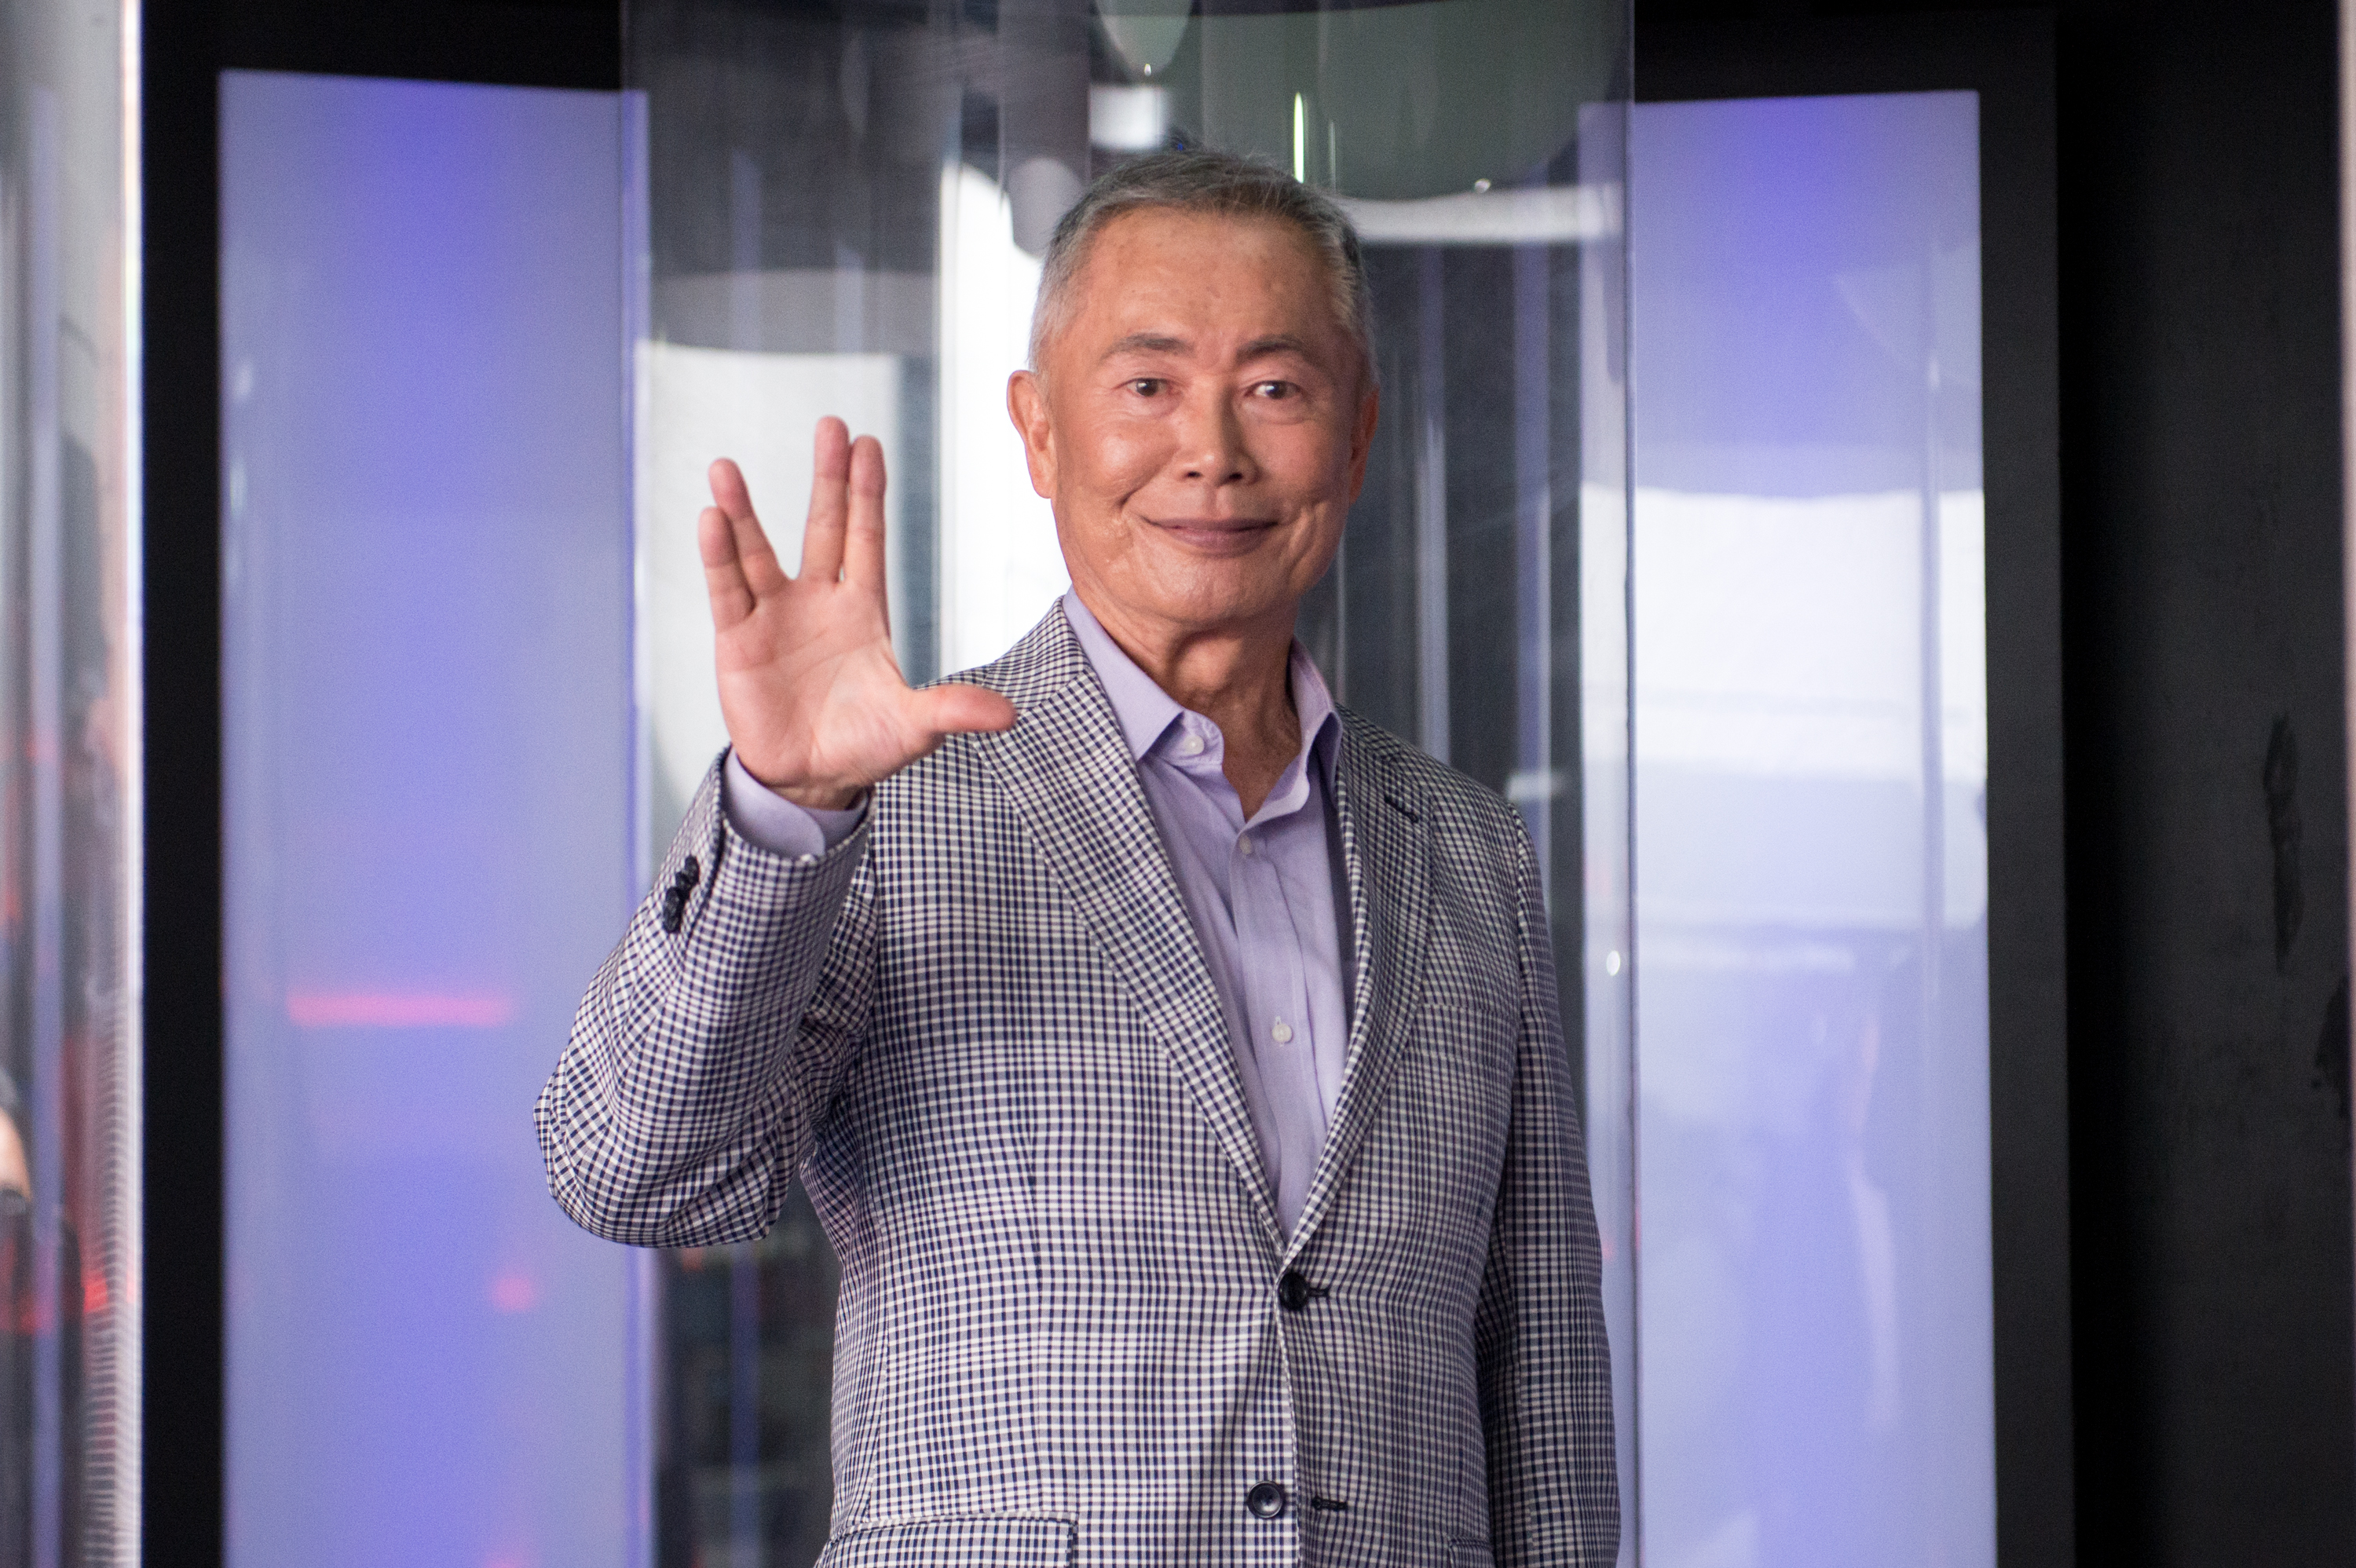 Actor George Takei attends the Star Trek: The Star Fleet Academy Experience at Intrepid Sea-Air-Space Museum on June 30, 2016 in New York City.